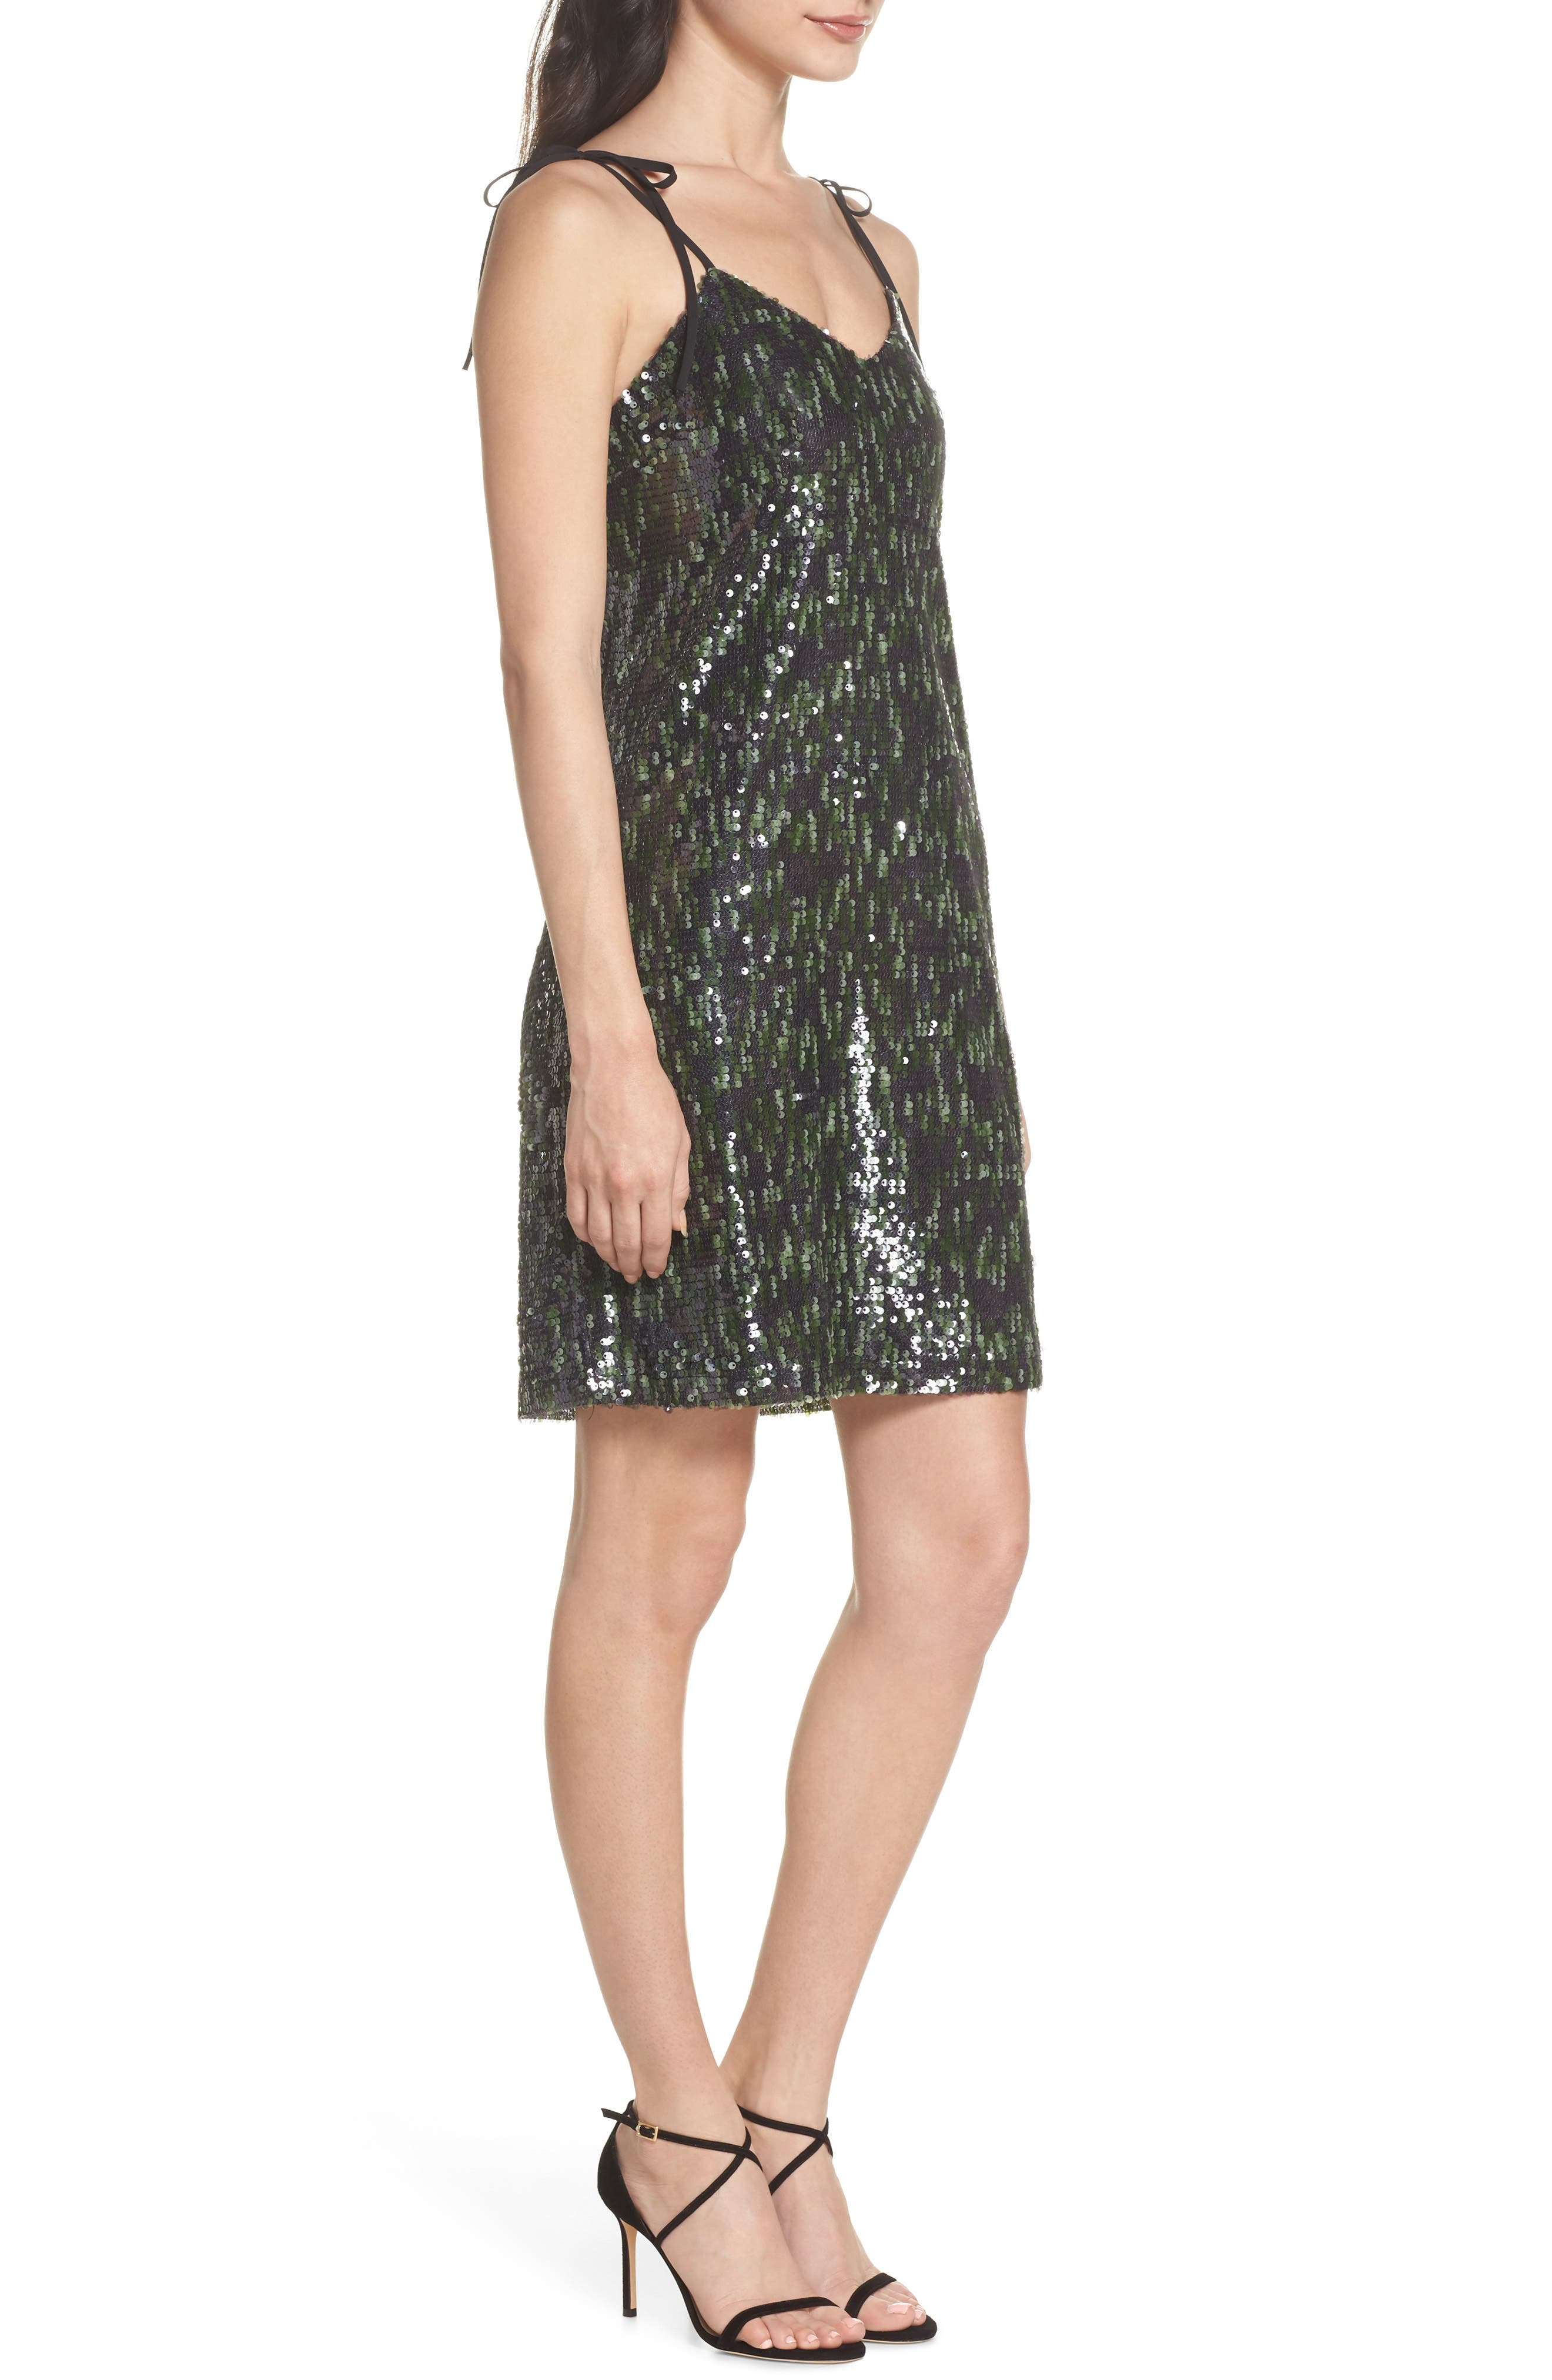 Camo Sequin Dress,                             Alternate thumbnail 3, color,                             Black/ Green